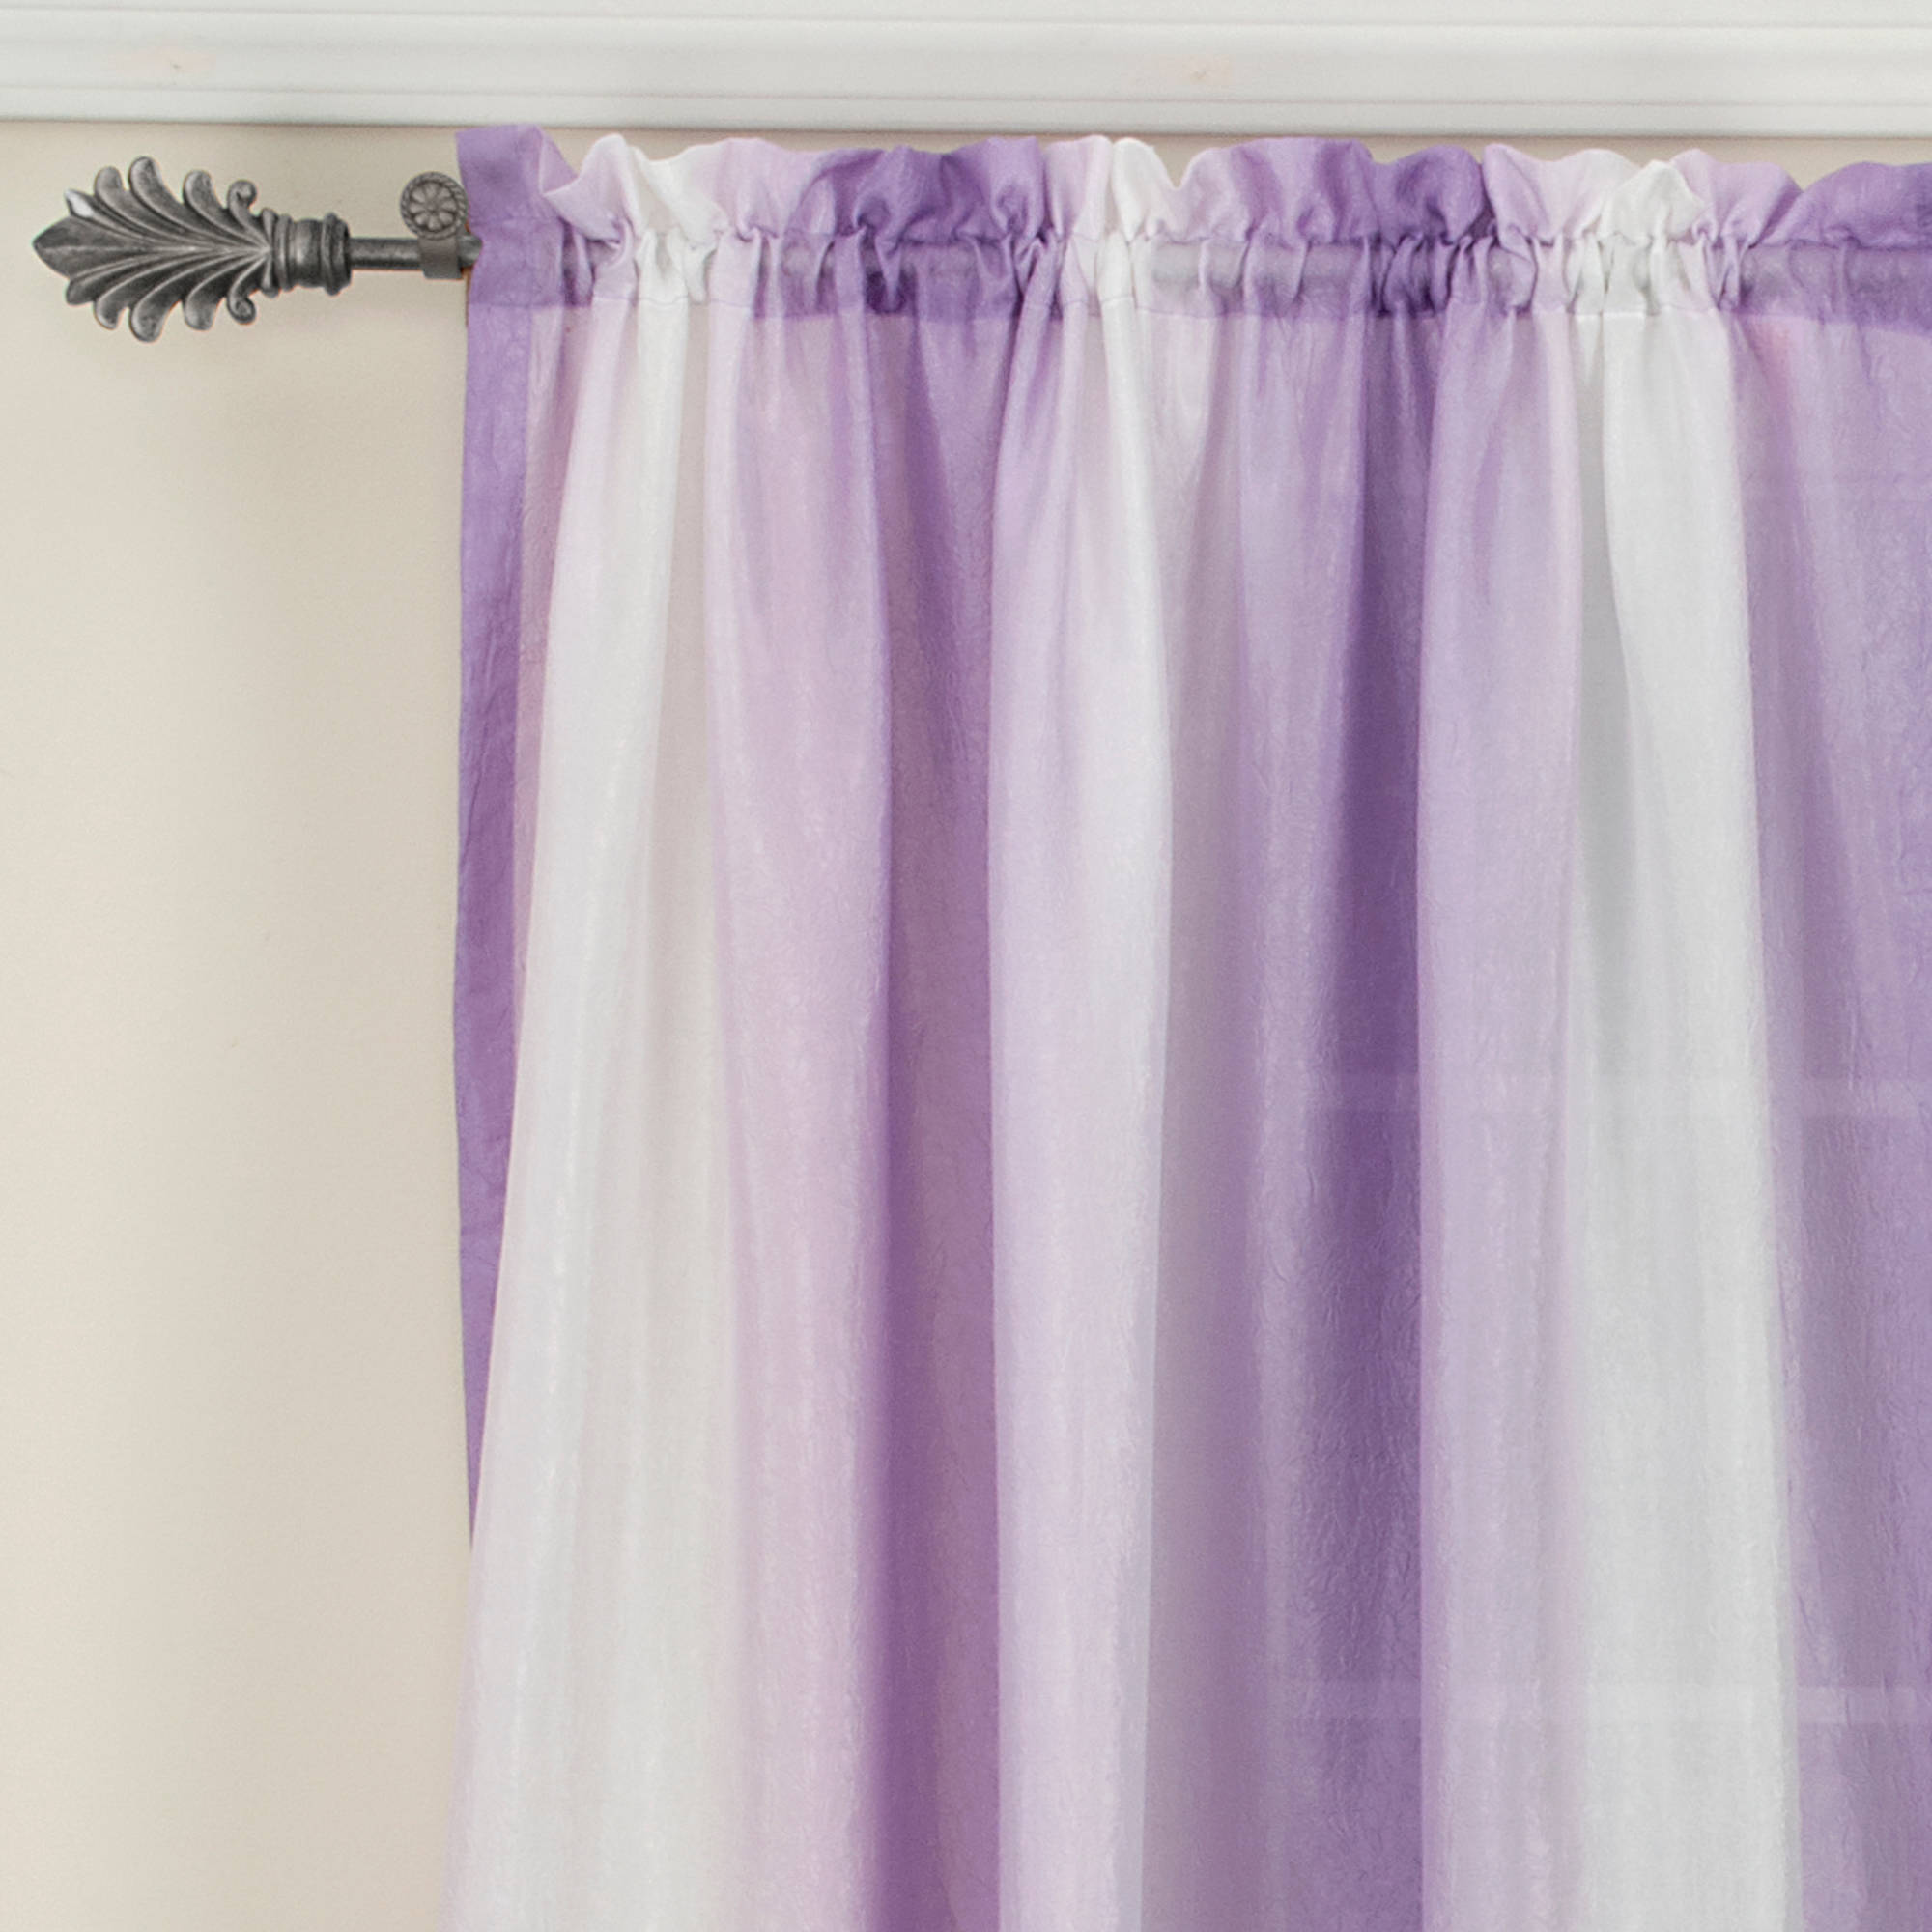 garden overstock today home curtains dream panels product circle of lush free inch shipping decor curtain set purple